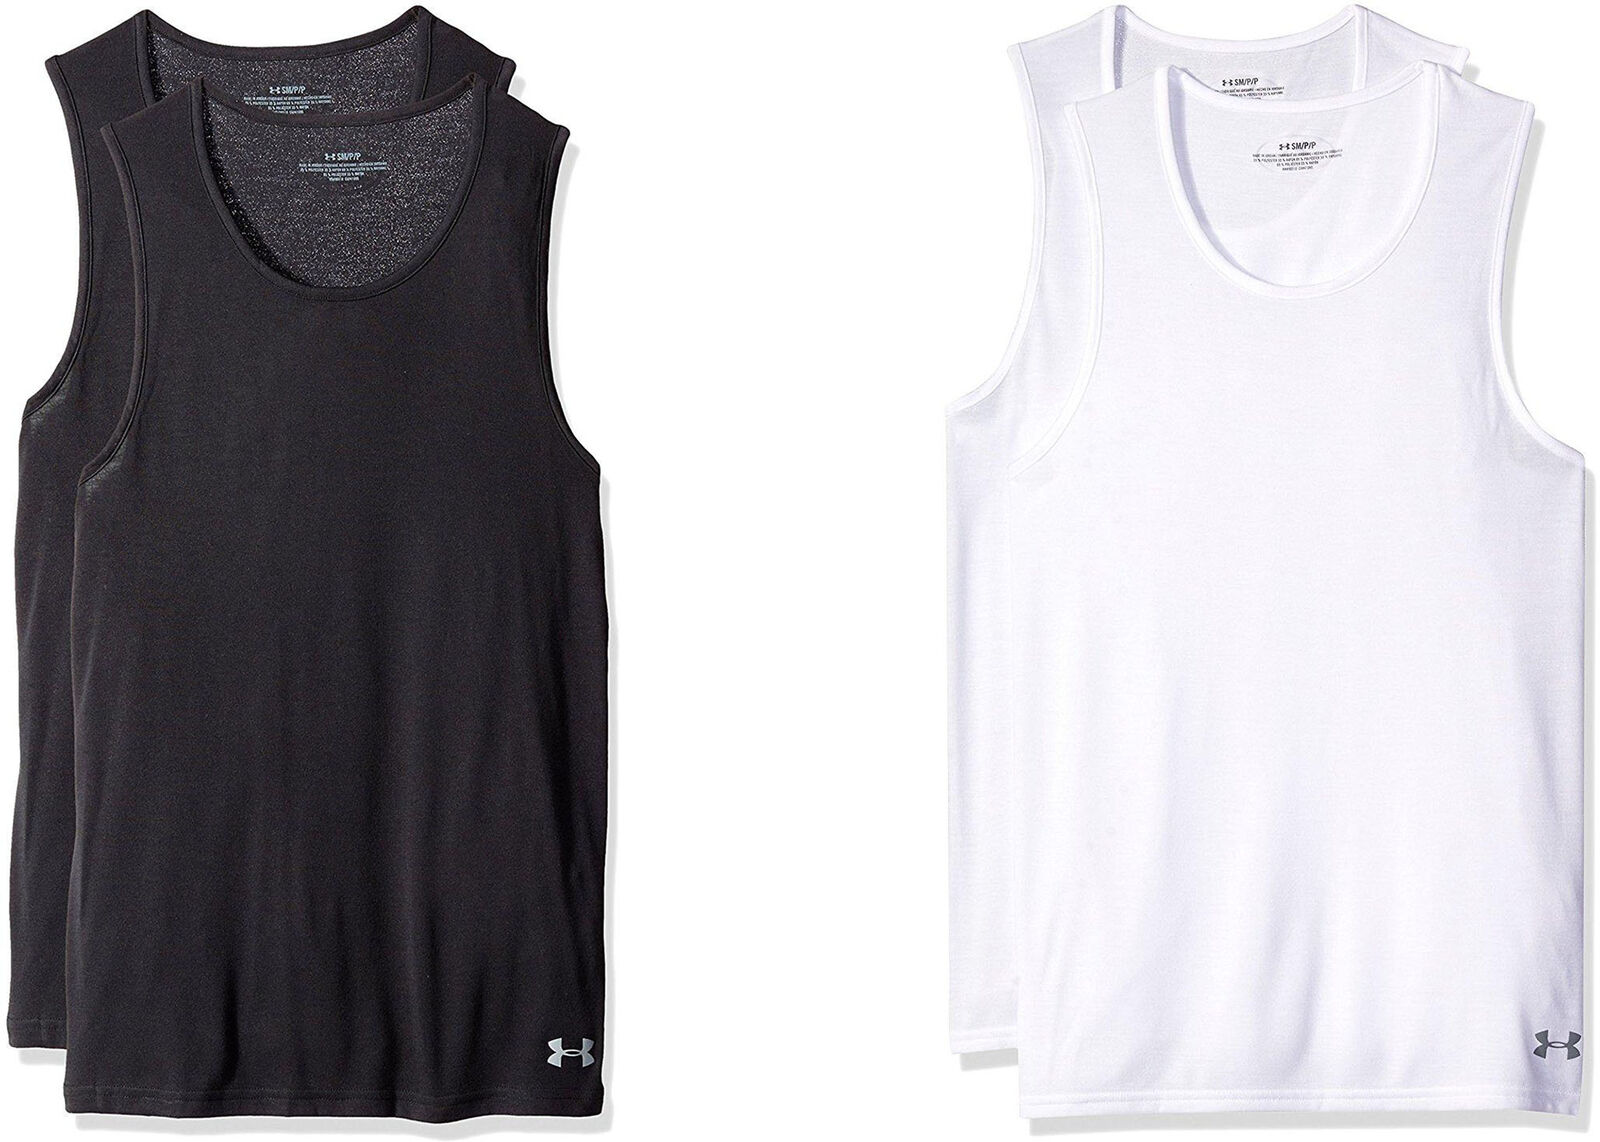 New Men/'s UA Under Armour Core Tank Top 2-Pack Undershirt White MSRP $35